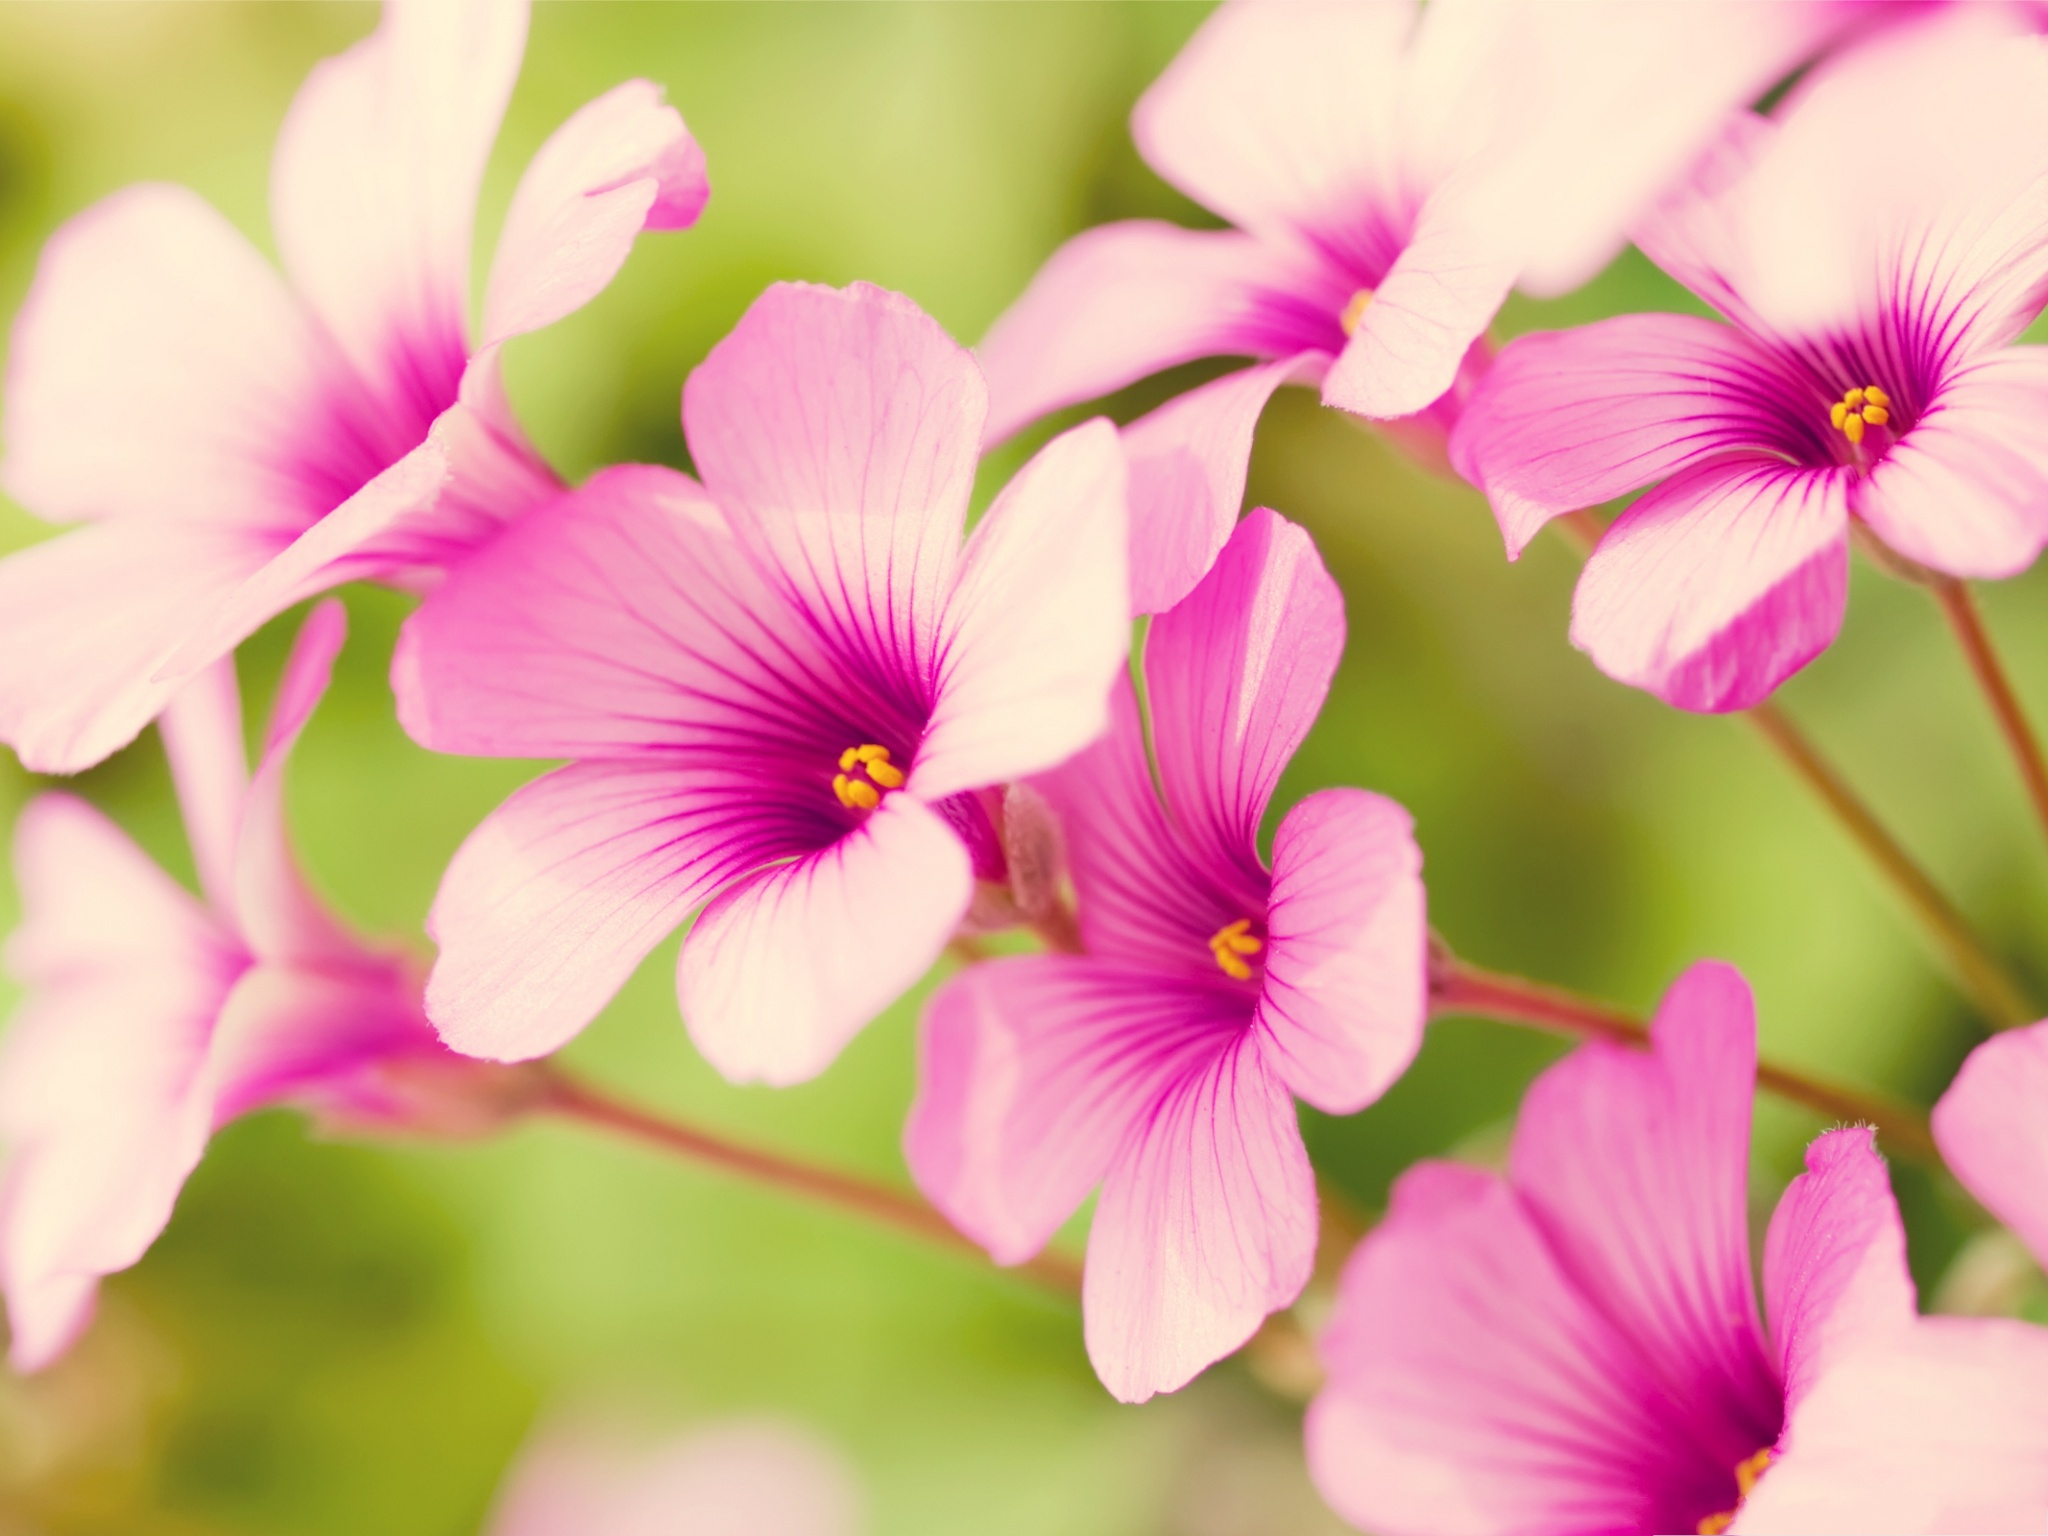 Pink Flower Petals Small Flowers Blooming Nice Looking and Impressive 2048X